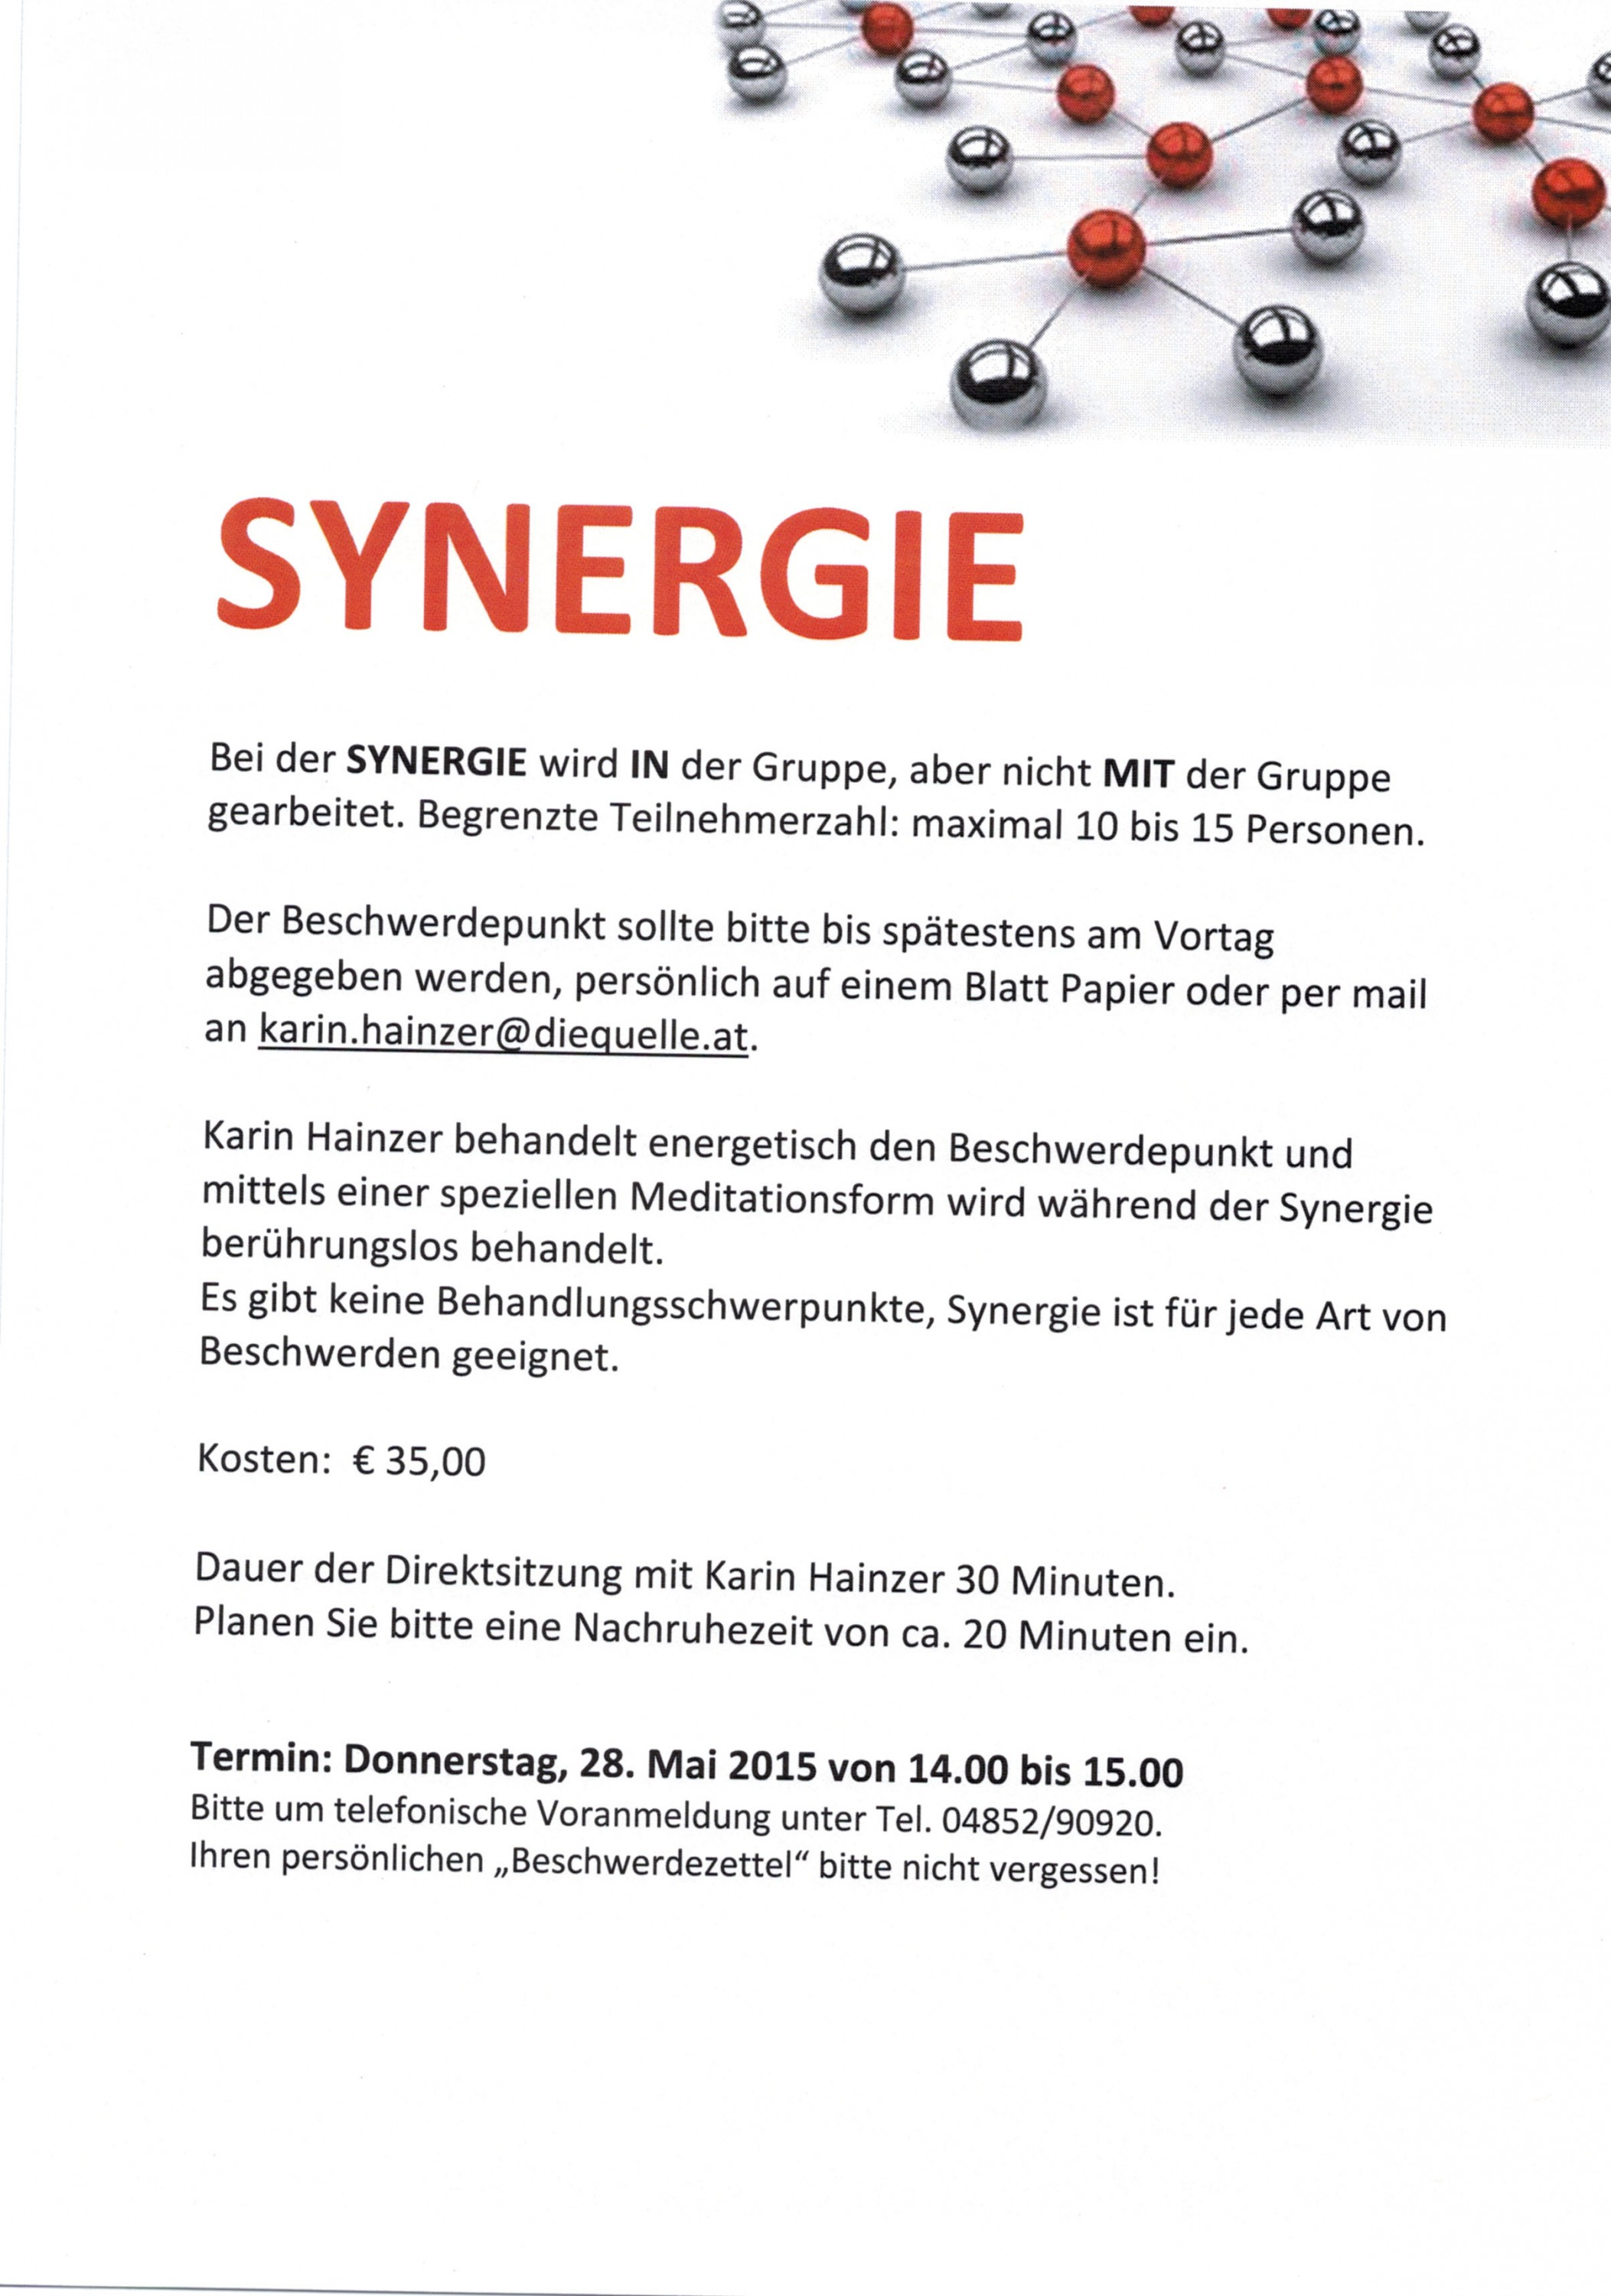 Synergie 28.05.2015